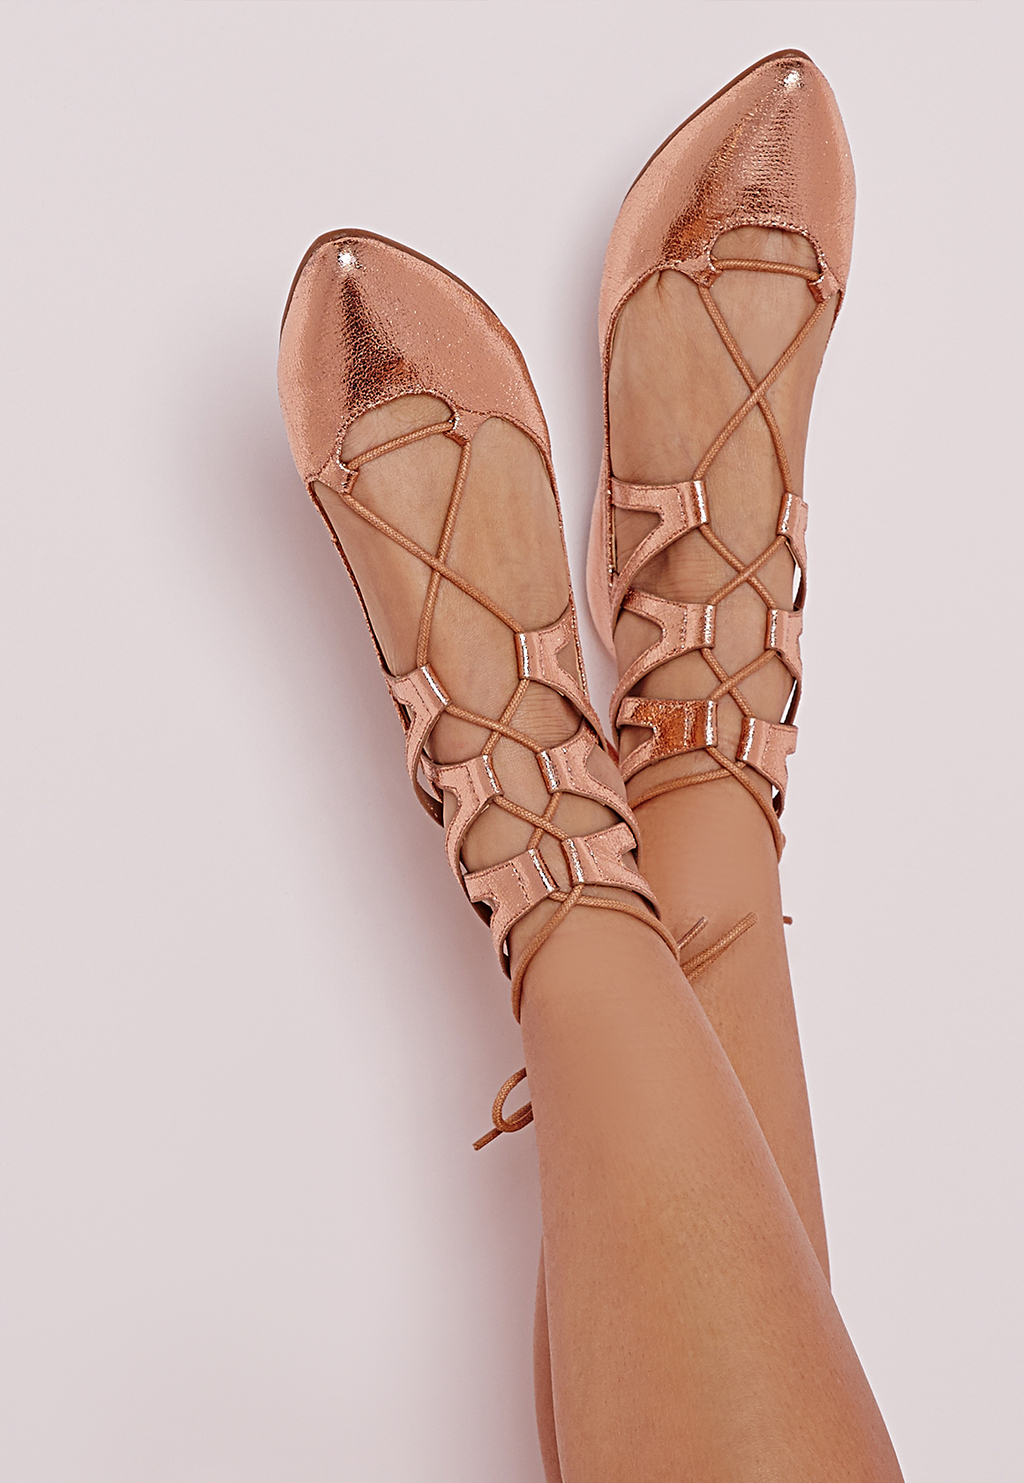 Lace Up Pumps Rose Gold, Red - predominant colour: gold; occasions: casual, creative work; material: faux leather; heel height: flat; ankle detail: ankle tie; toe: pointed toe; style: ballerinas / pumps; finish: patent; pattern: plain; season: s/s 2016